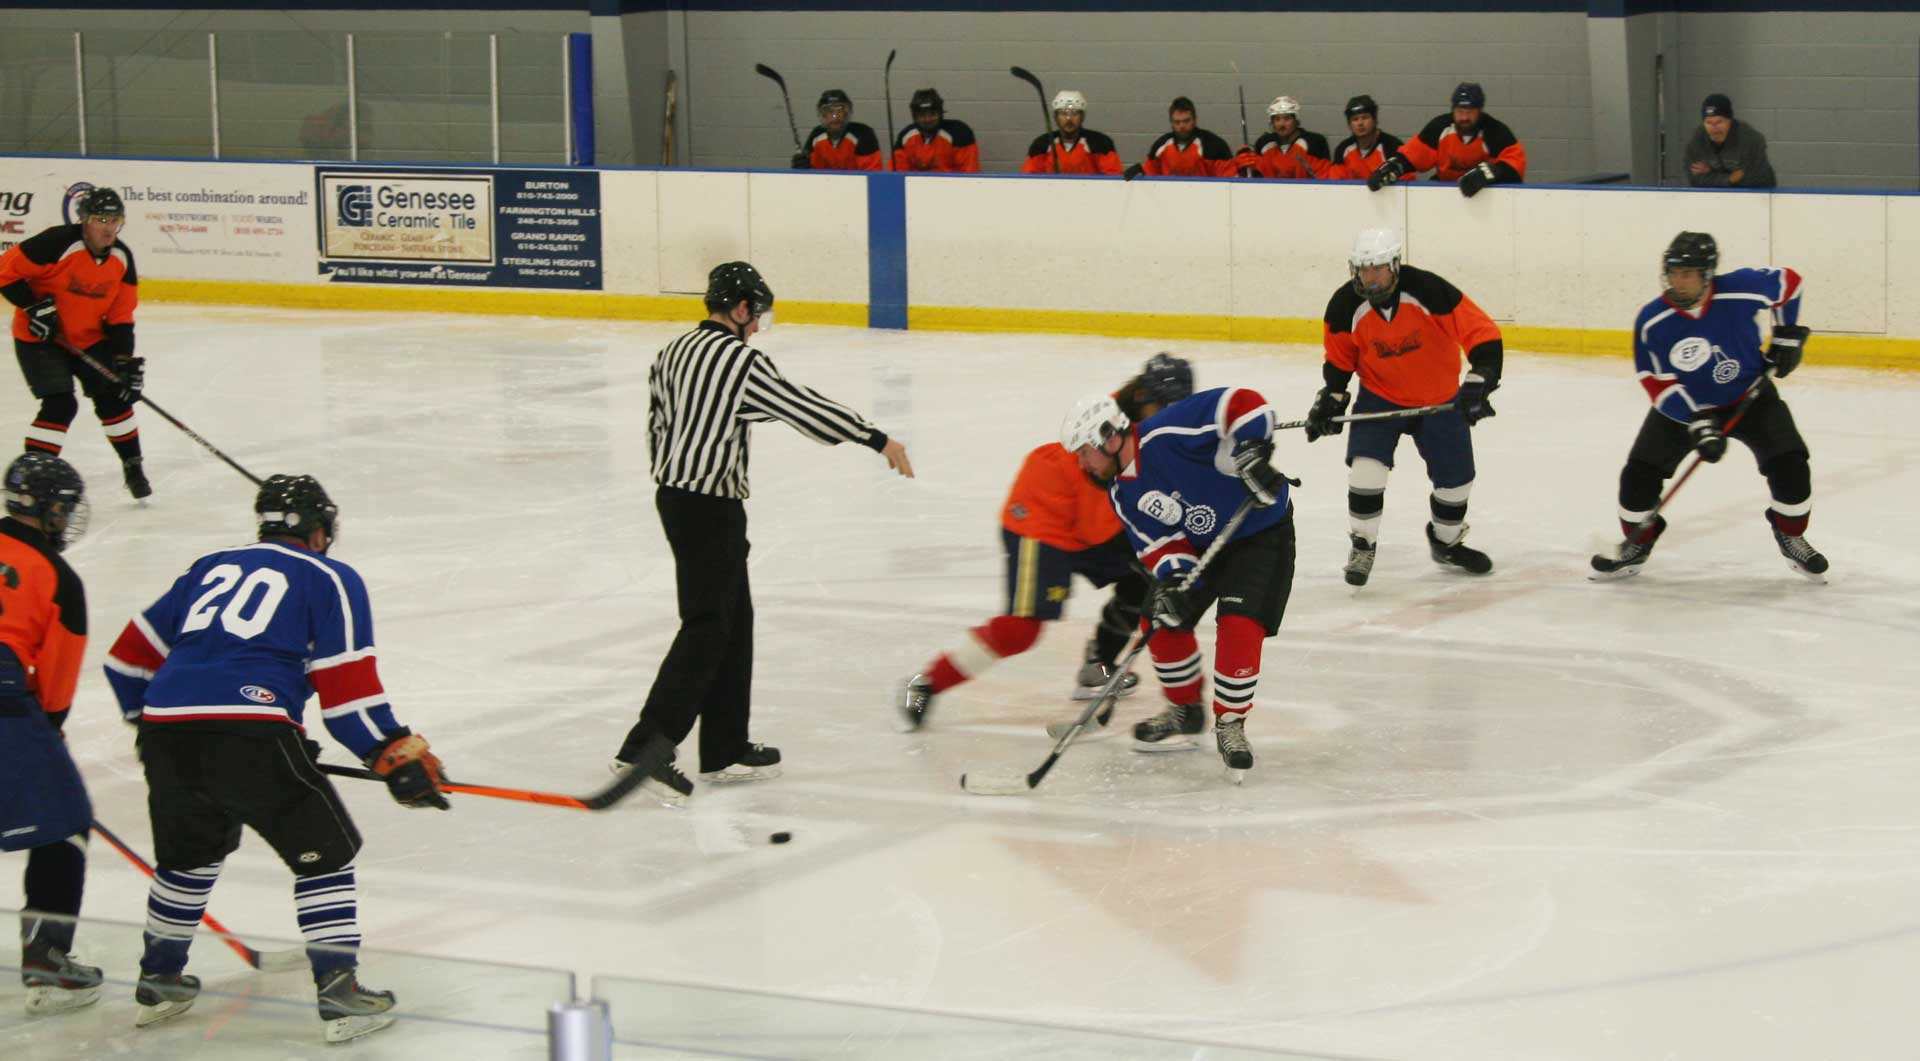 Flint Area Ice Hockey League Play